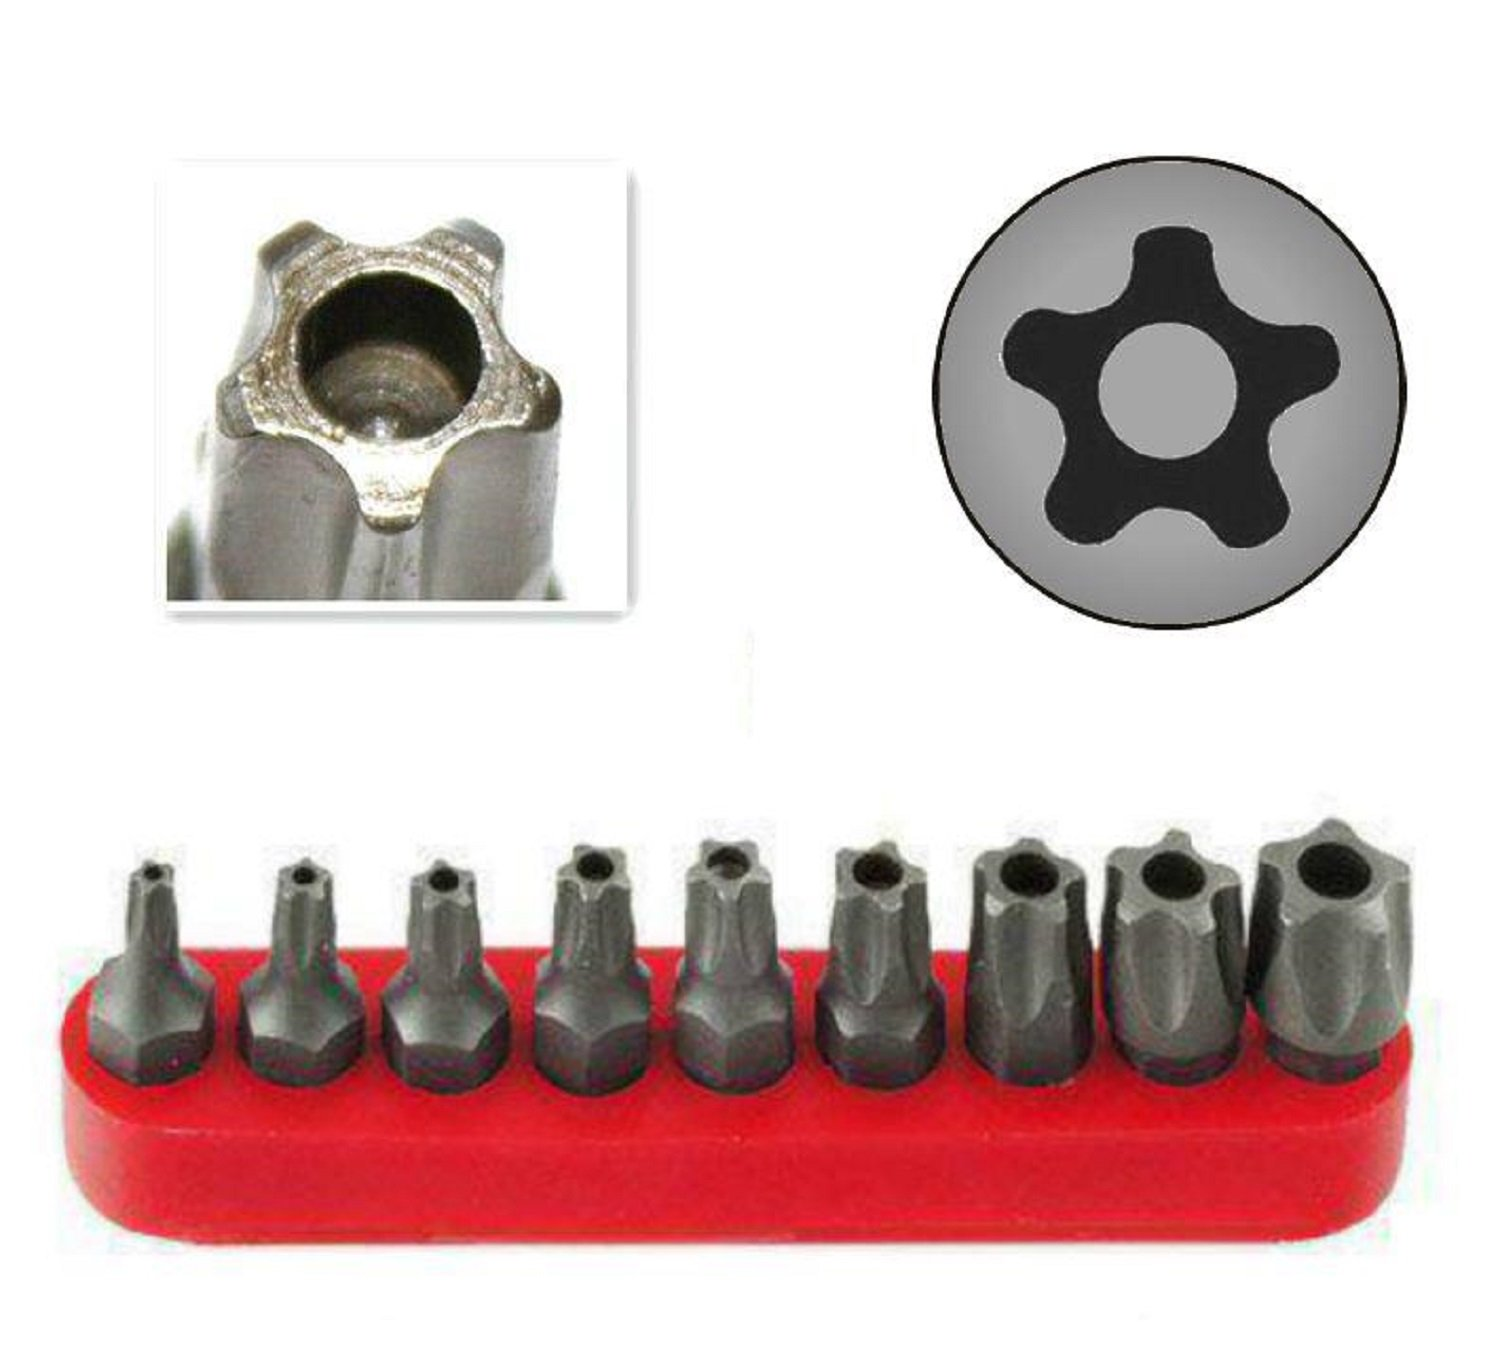 RAM-PRO 9Pc Torx Star 5 Point, Security Tamper Proof, Driver Bit Set - T10, 15,20,25,27,30,40,45,50 - Multifunction Damage/Shear Resistant Hollow Torque Kit by Ram-Pro